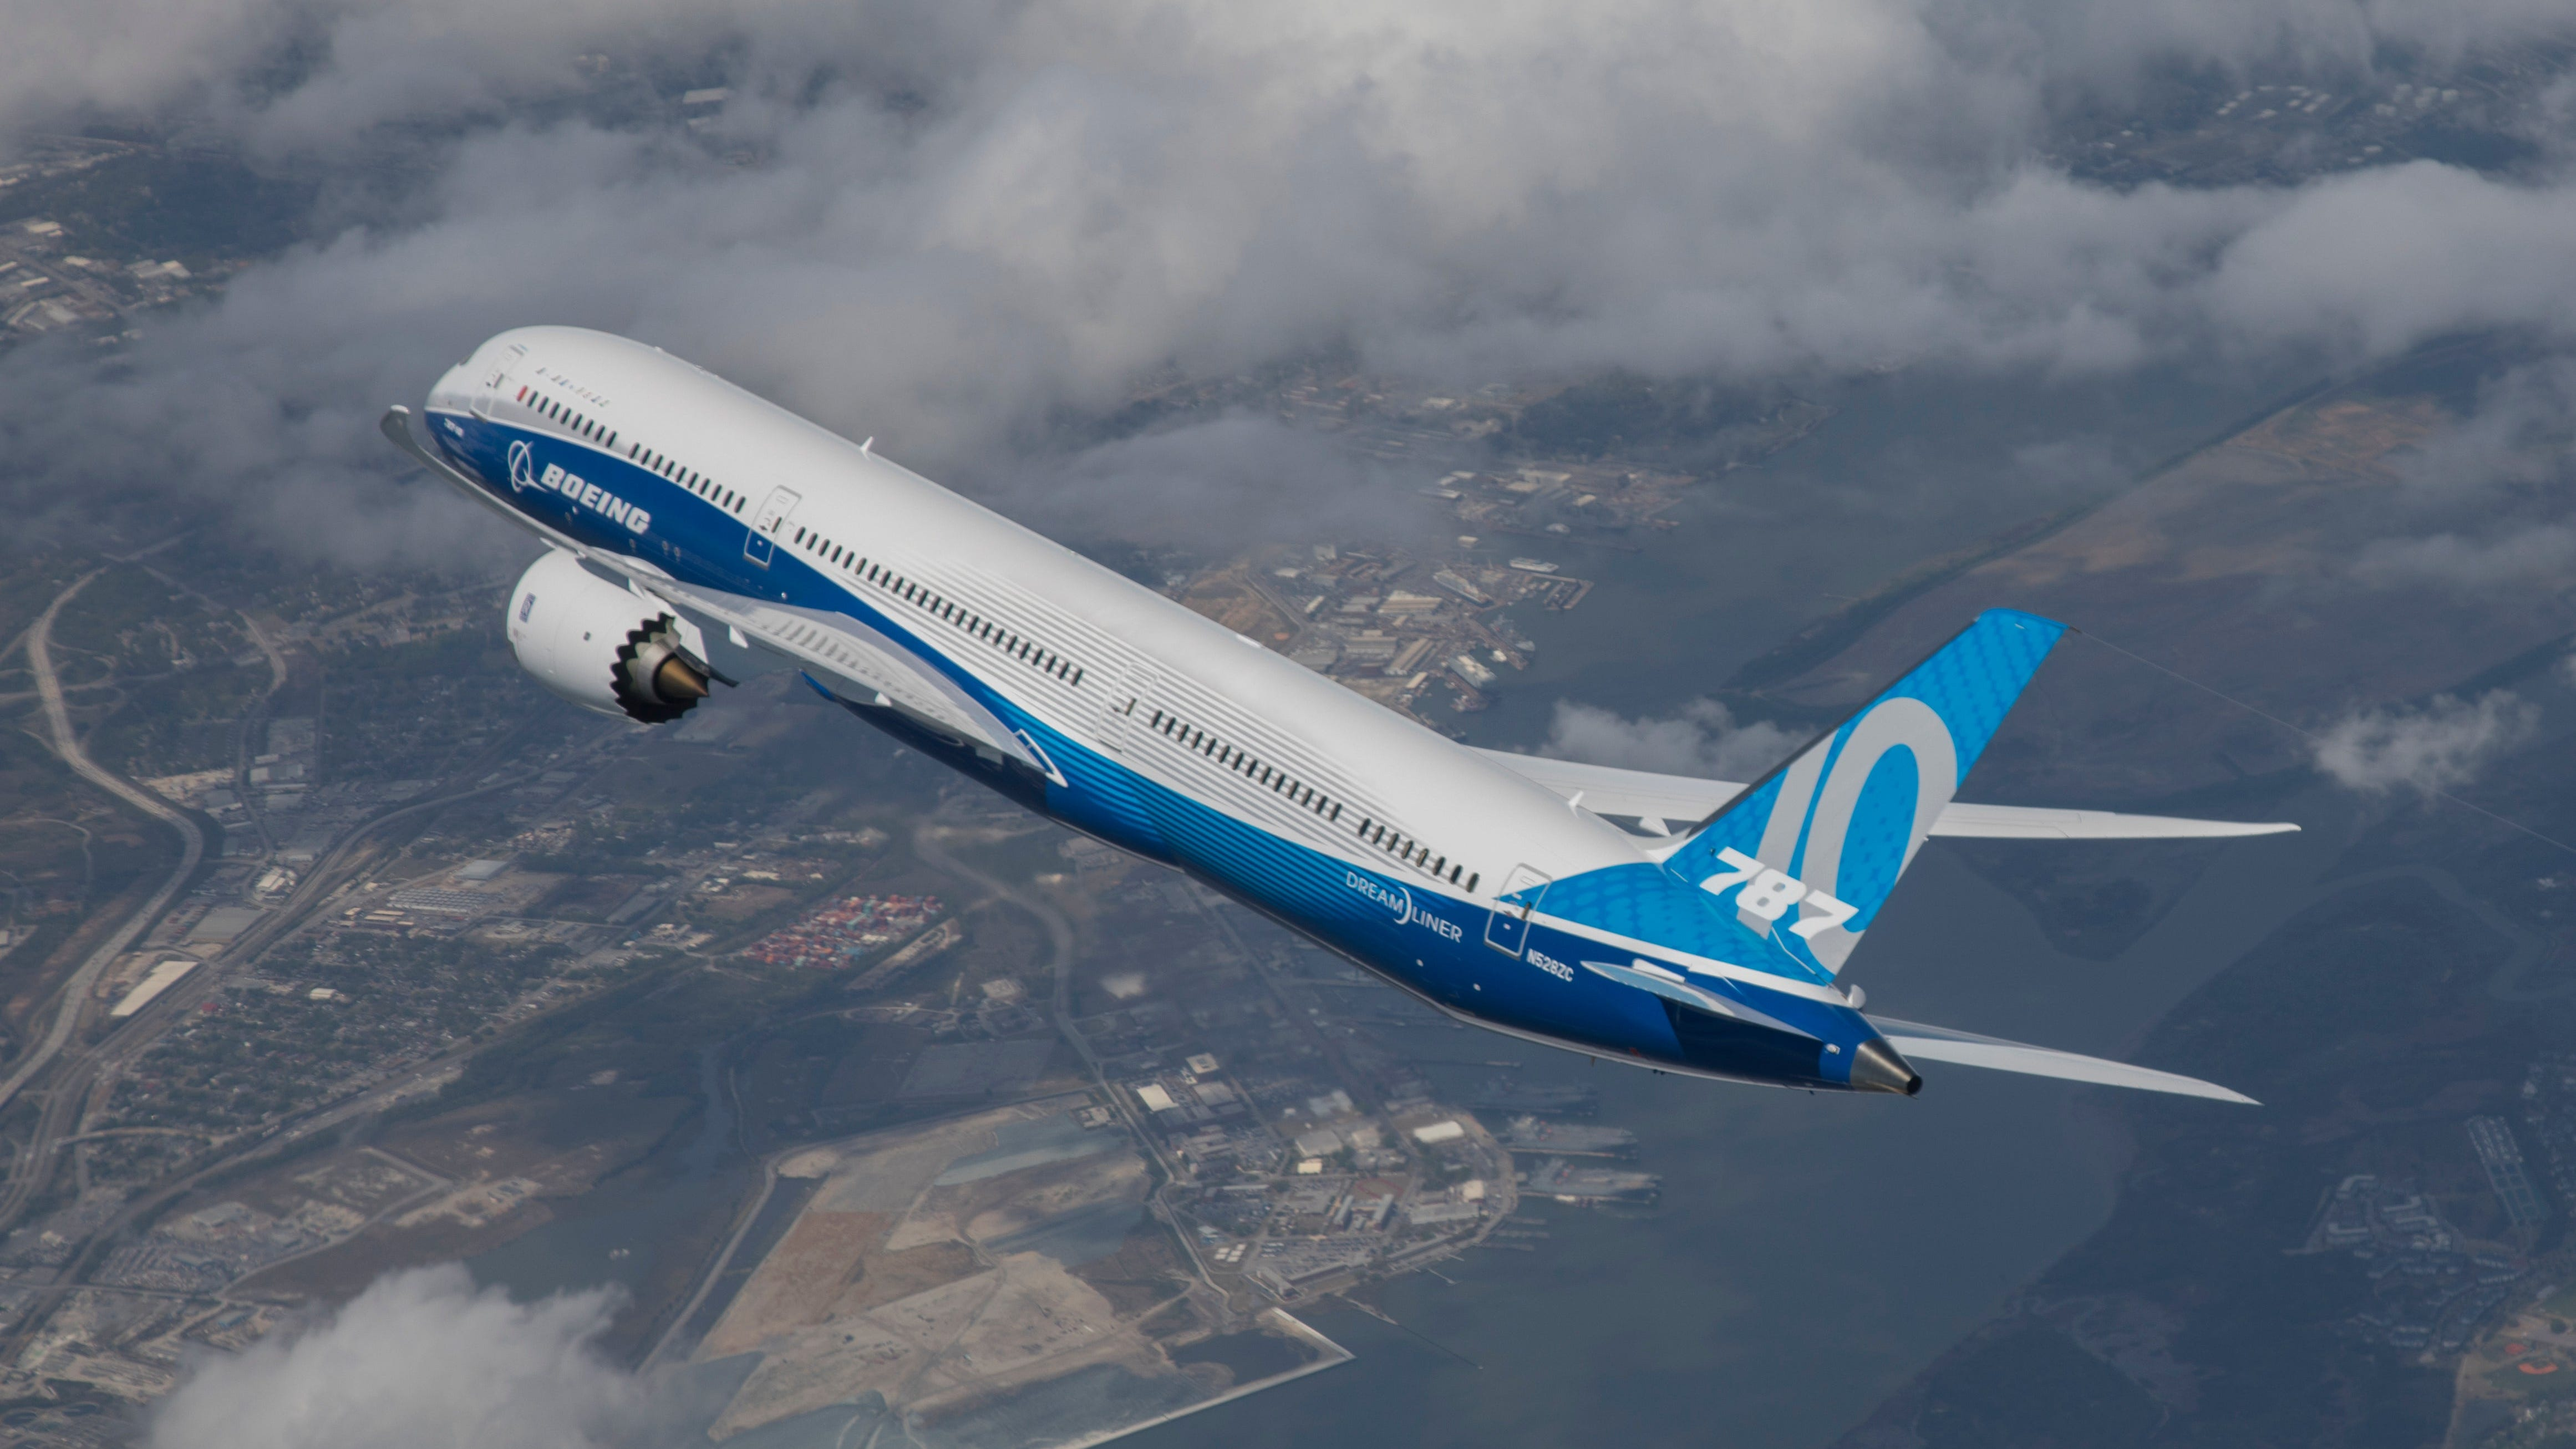 Boeing rules out bailout, borrows $25 billion through bond offering